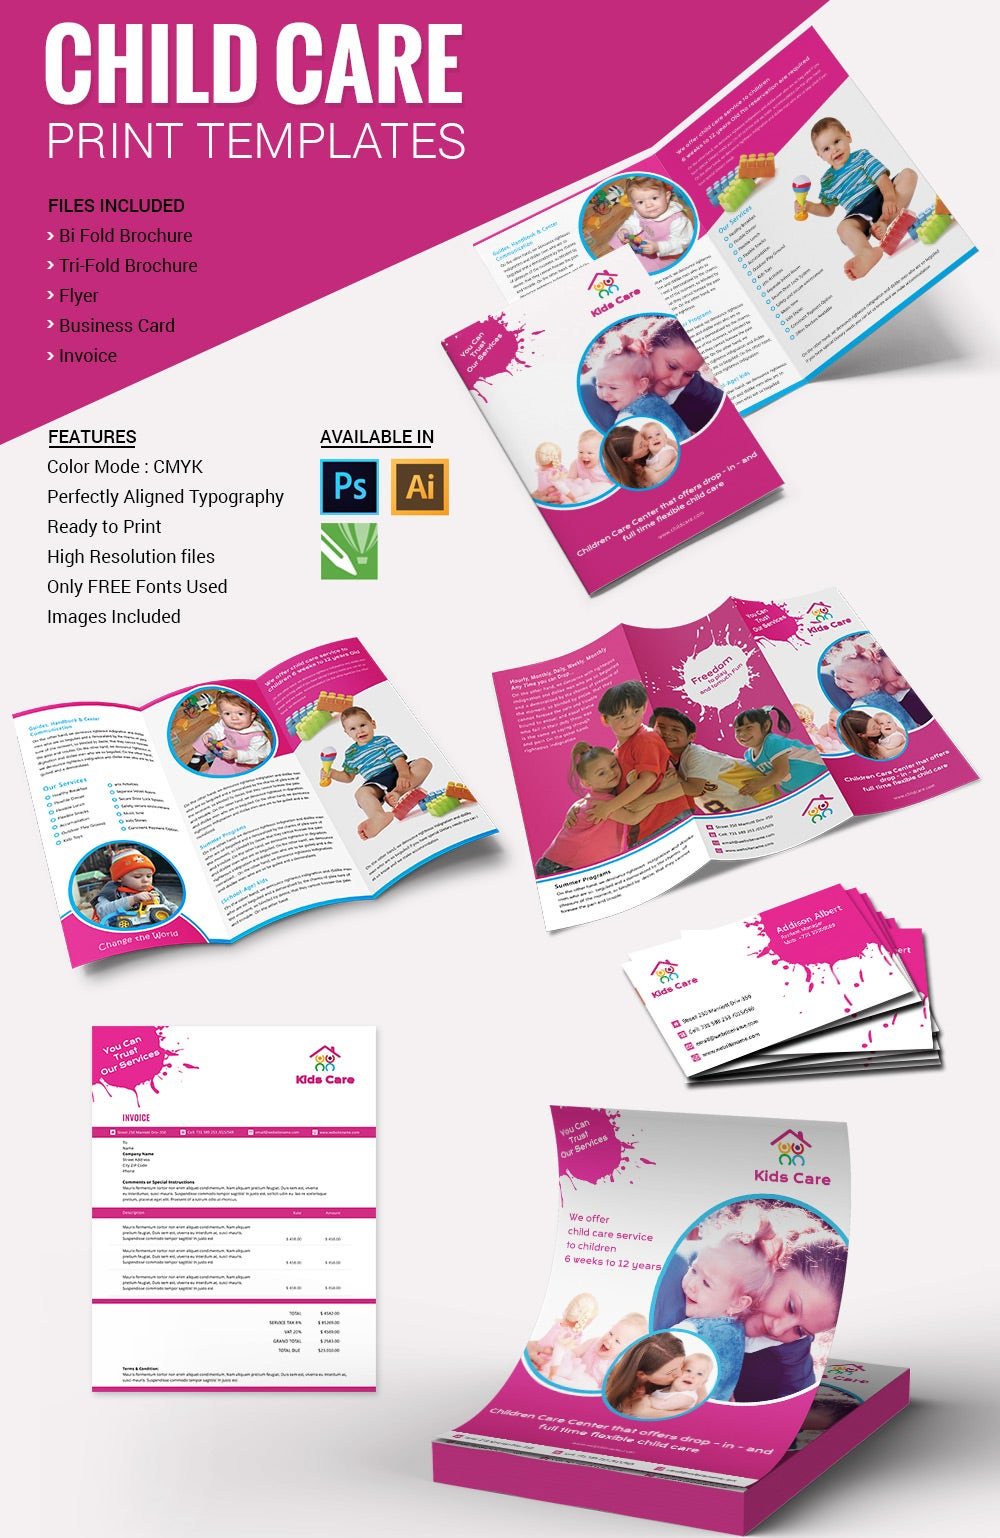 free pediatric brochure templates - 10 beautiful child care brochure templates free